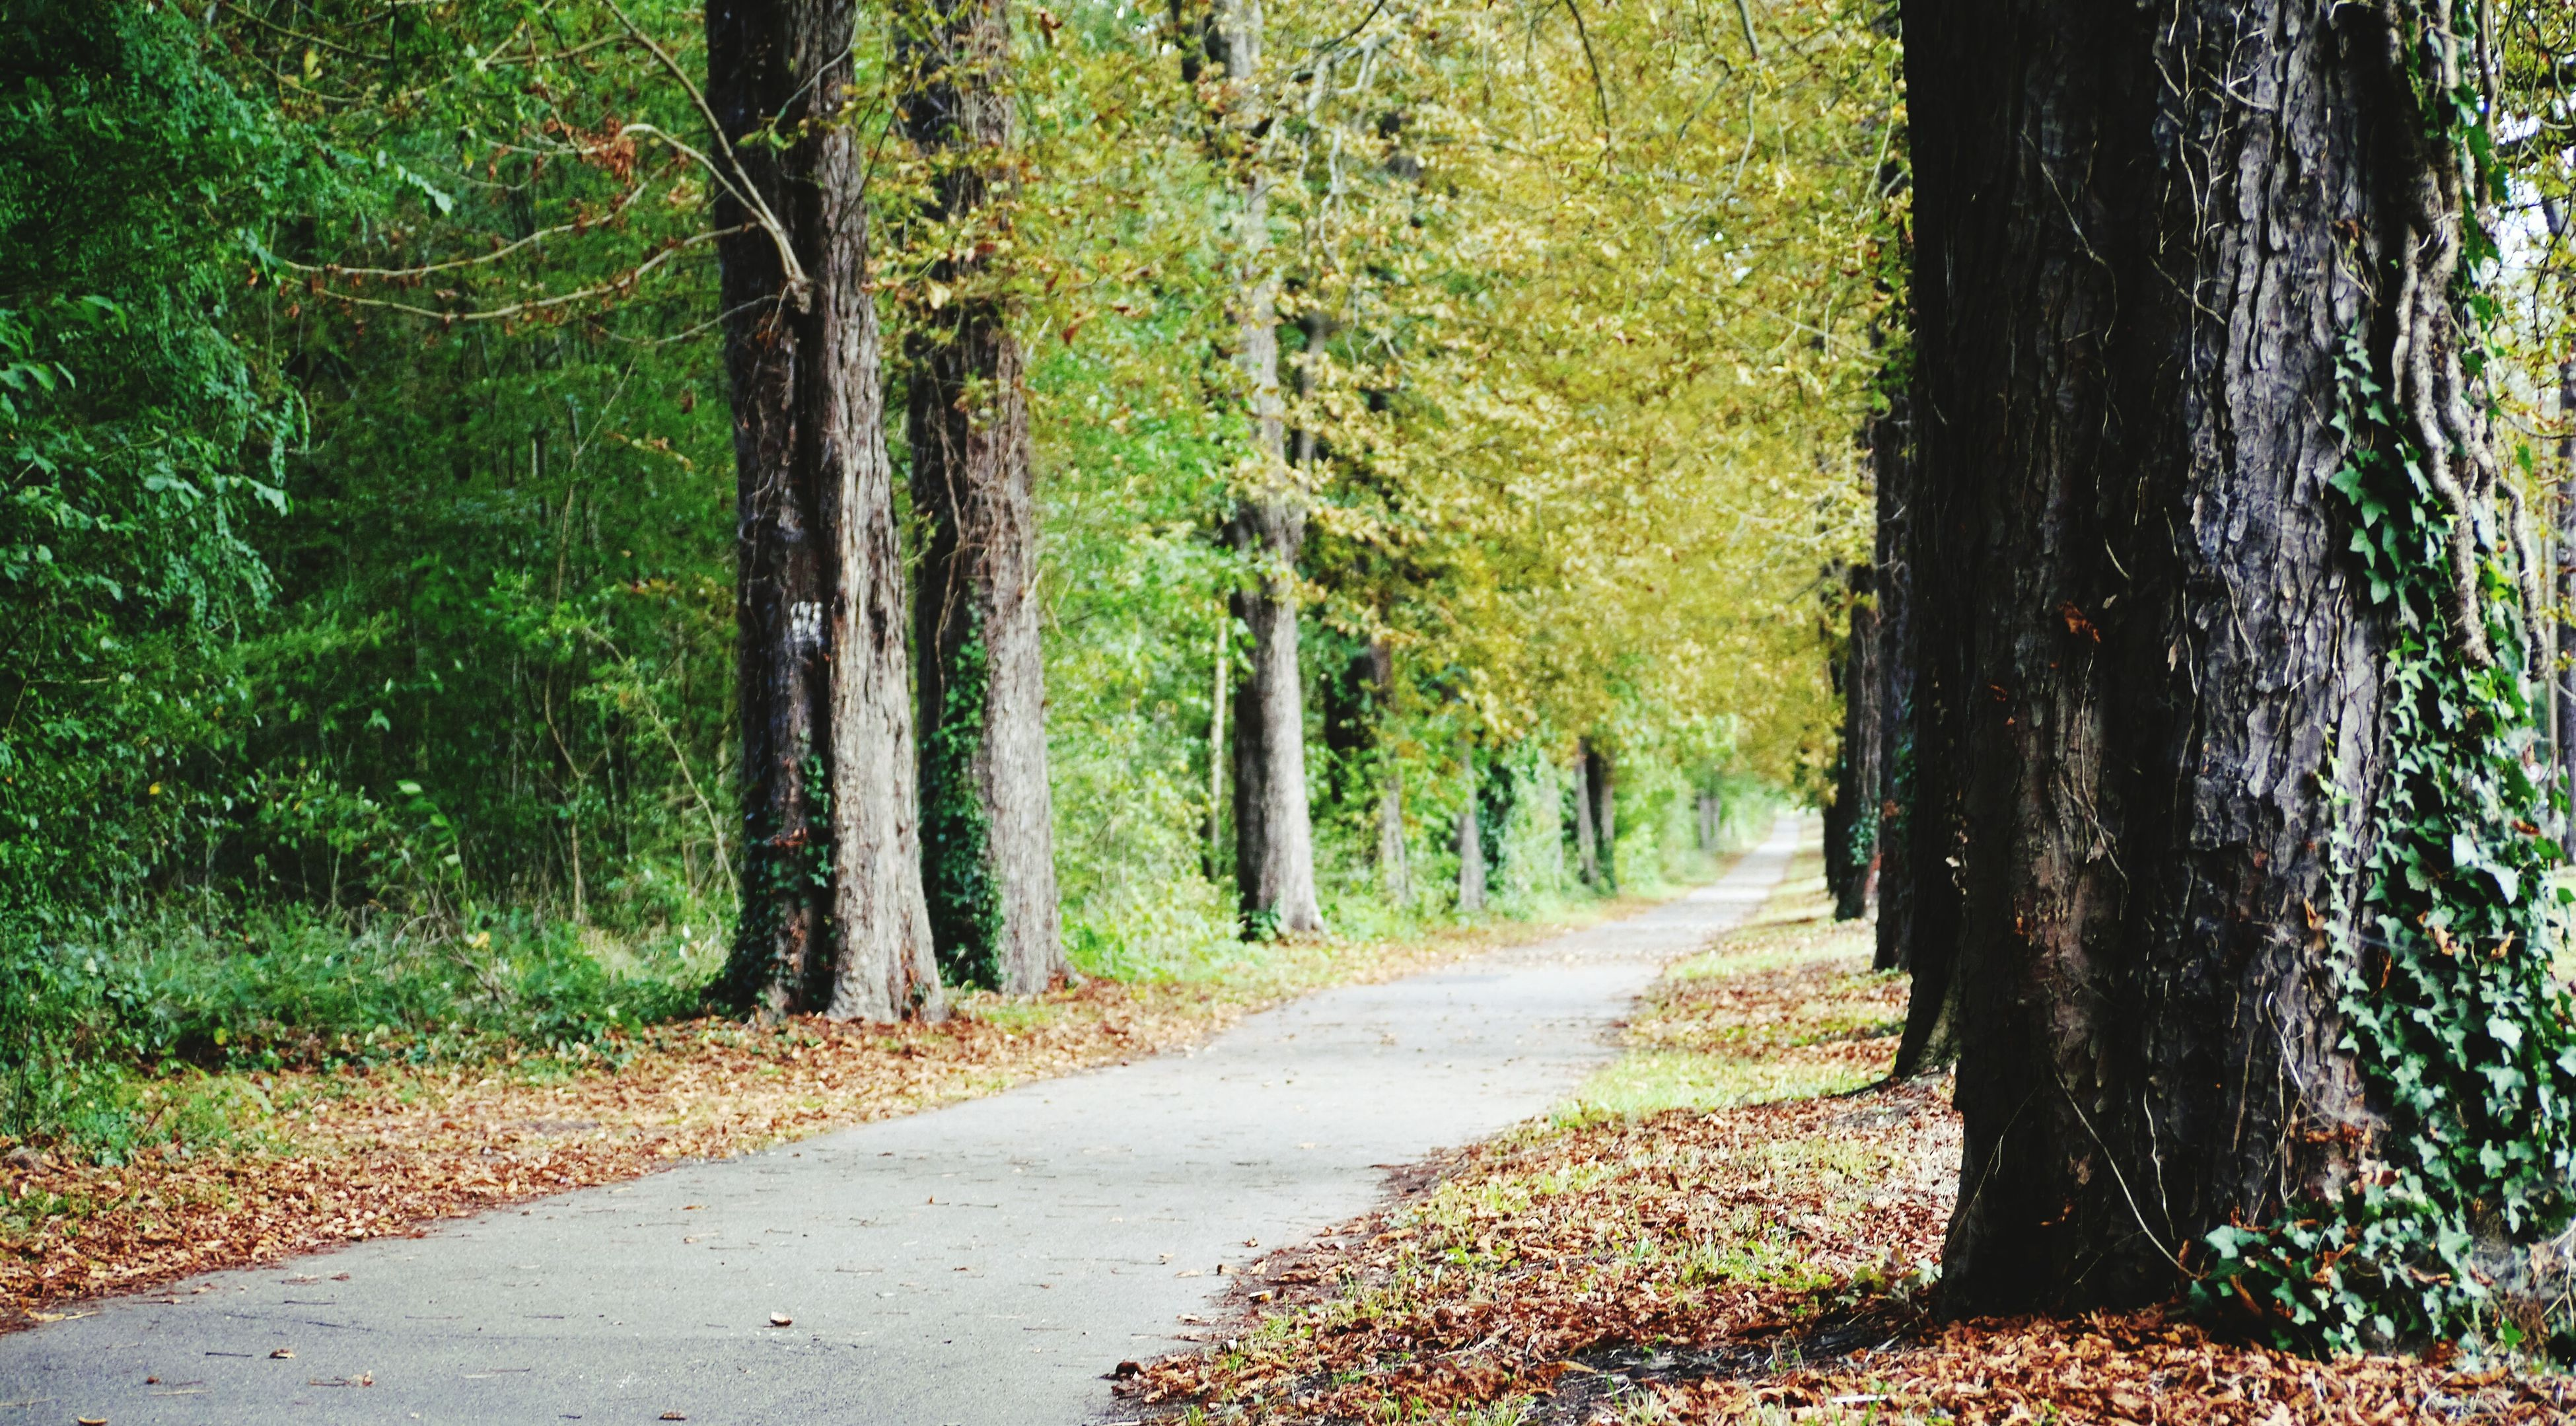 tree, tree trunk, the way forward, forest, transportation, growth, road, treelined, tranquil scene, long, green color, nature, empty road, diminishing perspective, tranquility, woodland, day, narrow, solitude, outdoors, beauty in nature, scenics, non-urban scene, lush foliage, countryside, country road, green, tree area